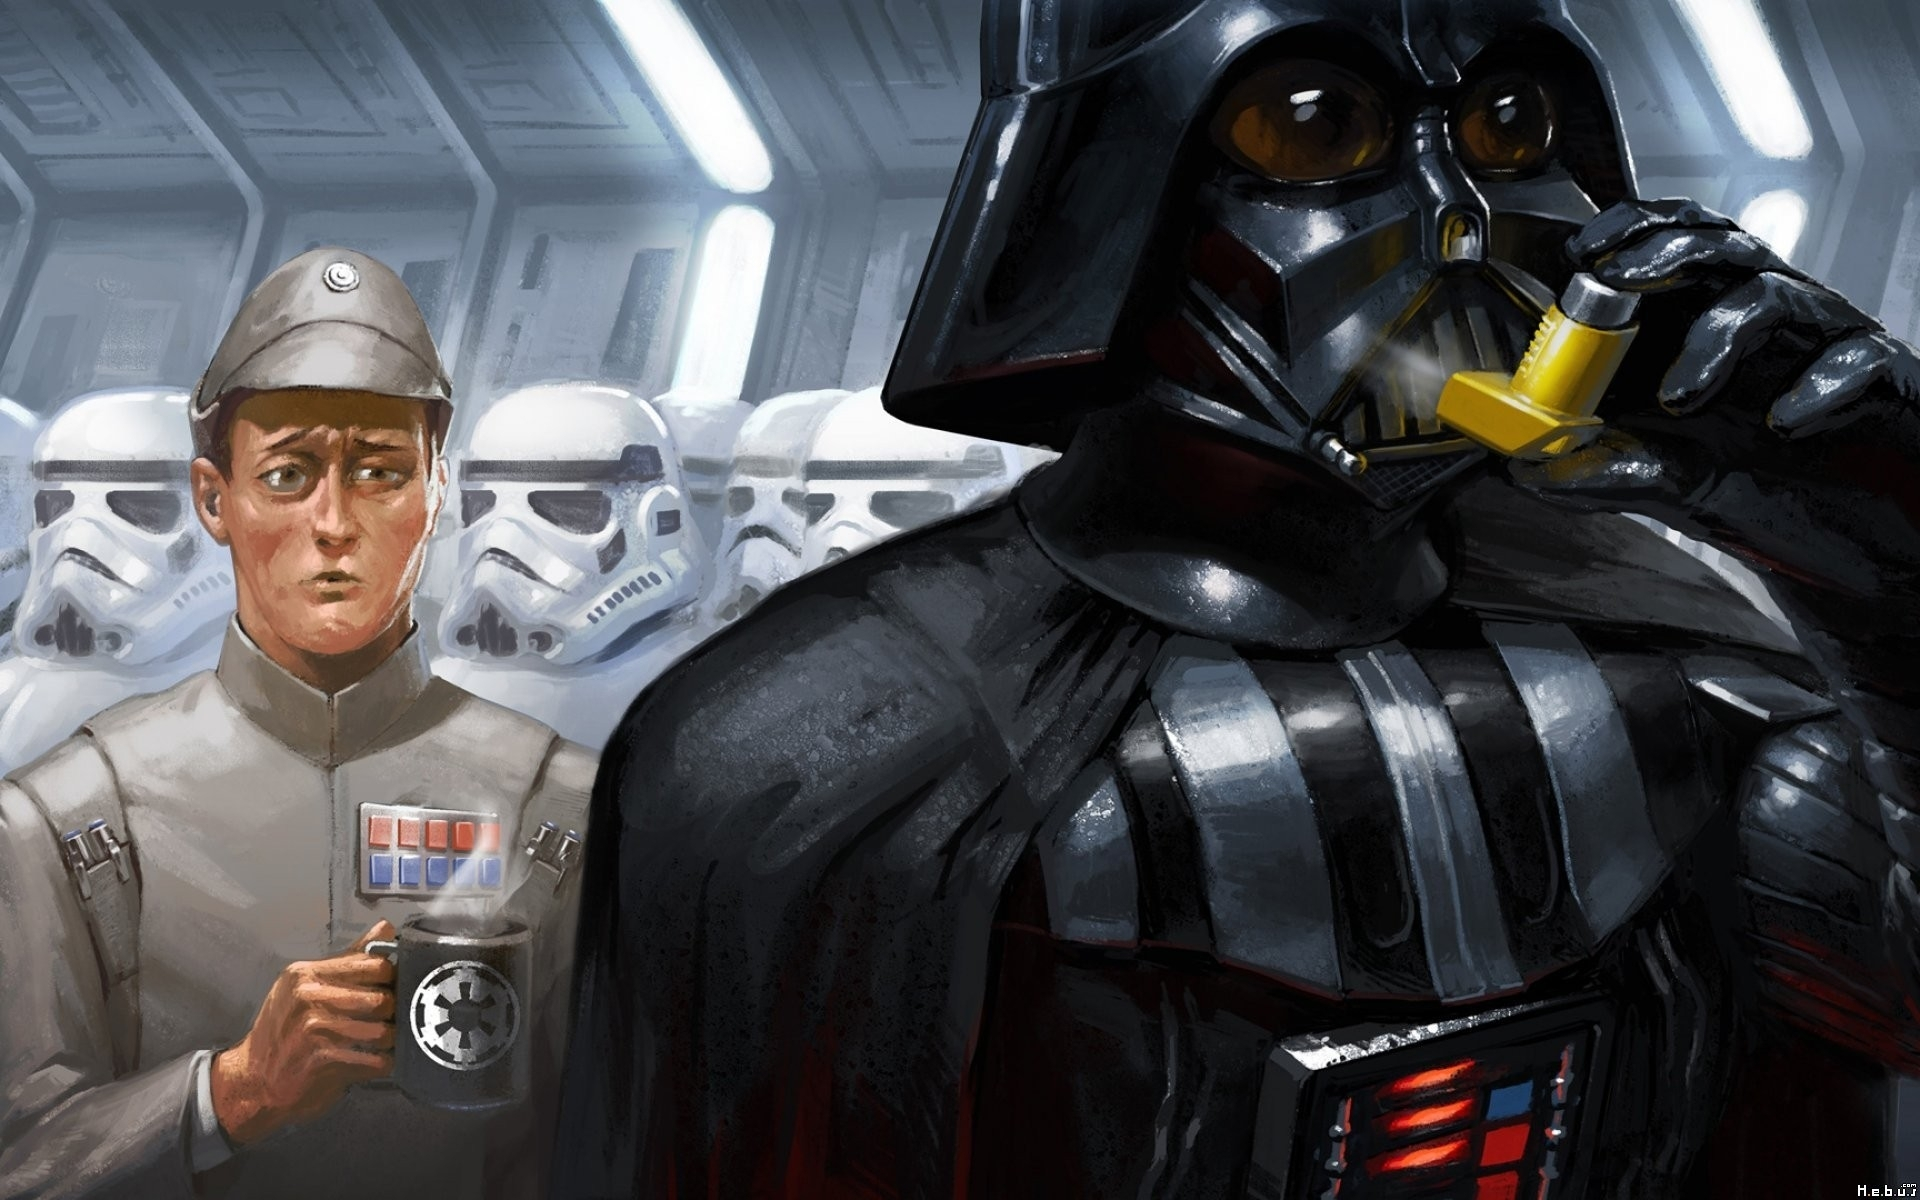 Star Wars HD Wallpapers, Pictures, Images